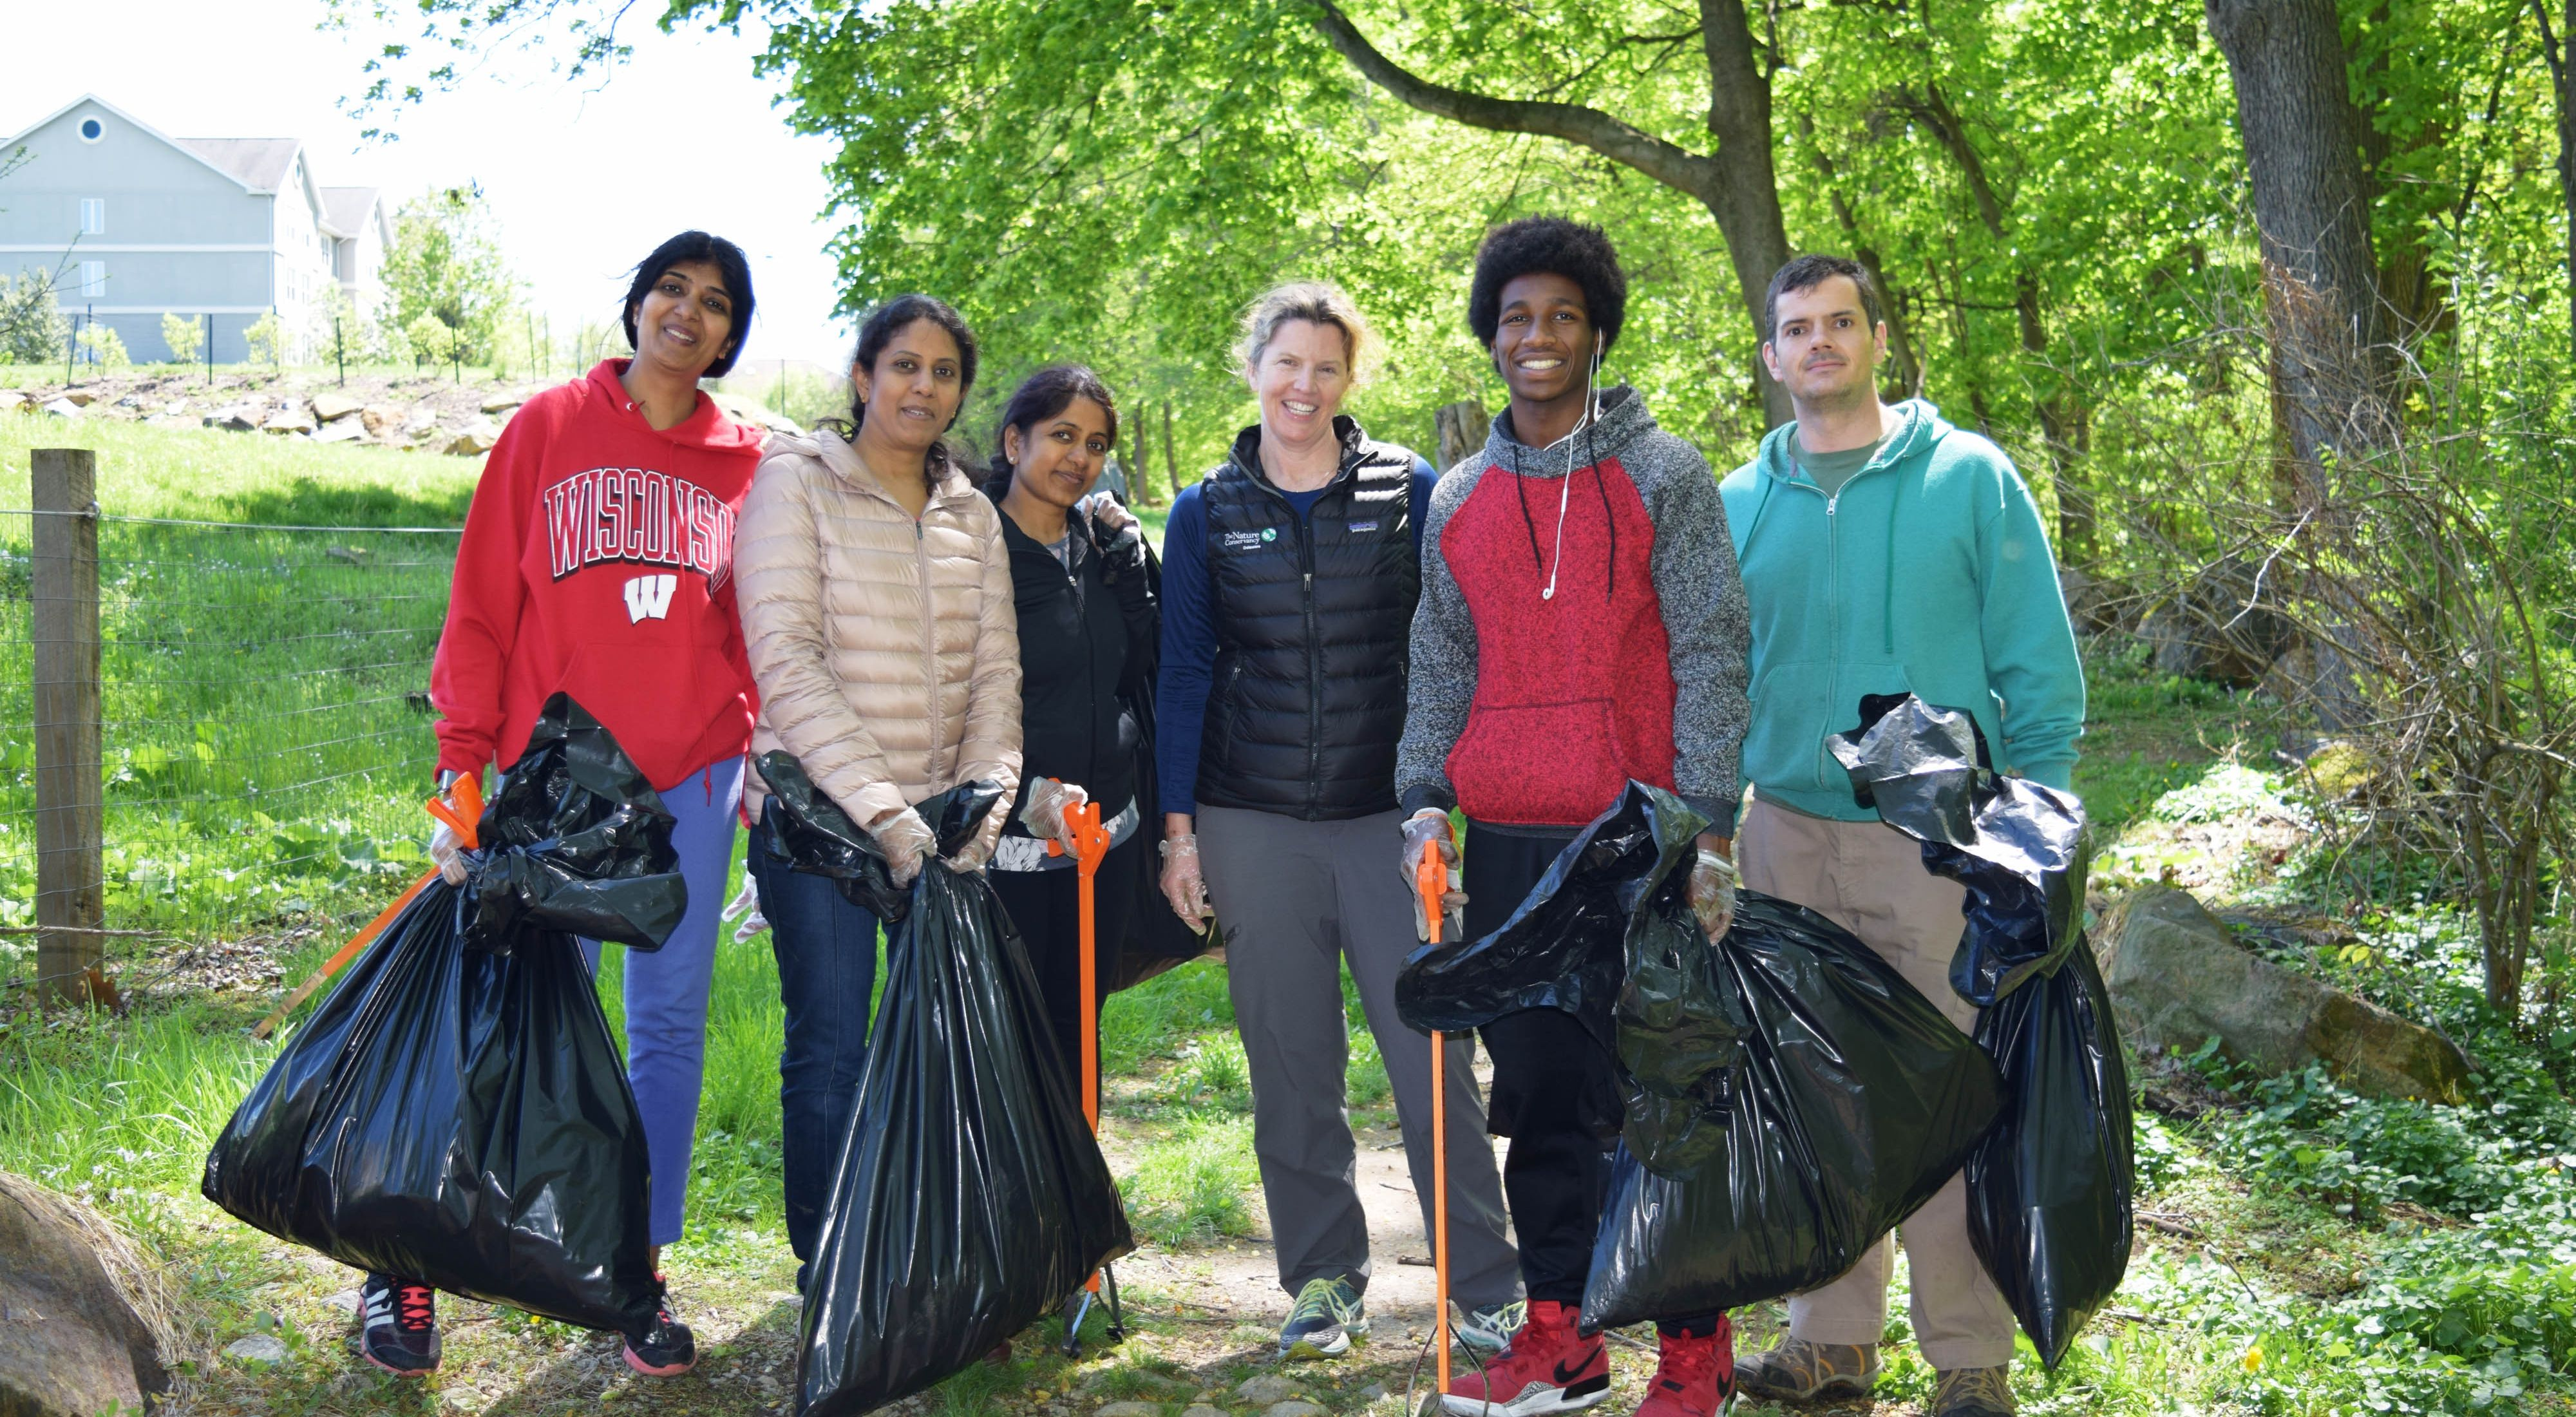 Six people pose together during a stream cleanup event. They are holding large black plastic trash bags and carrying long orange grabbers.